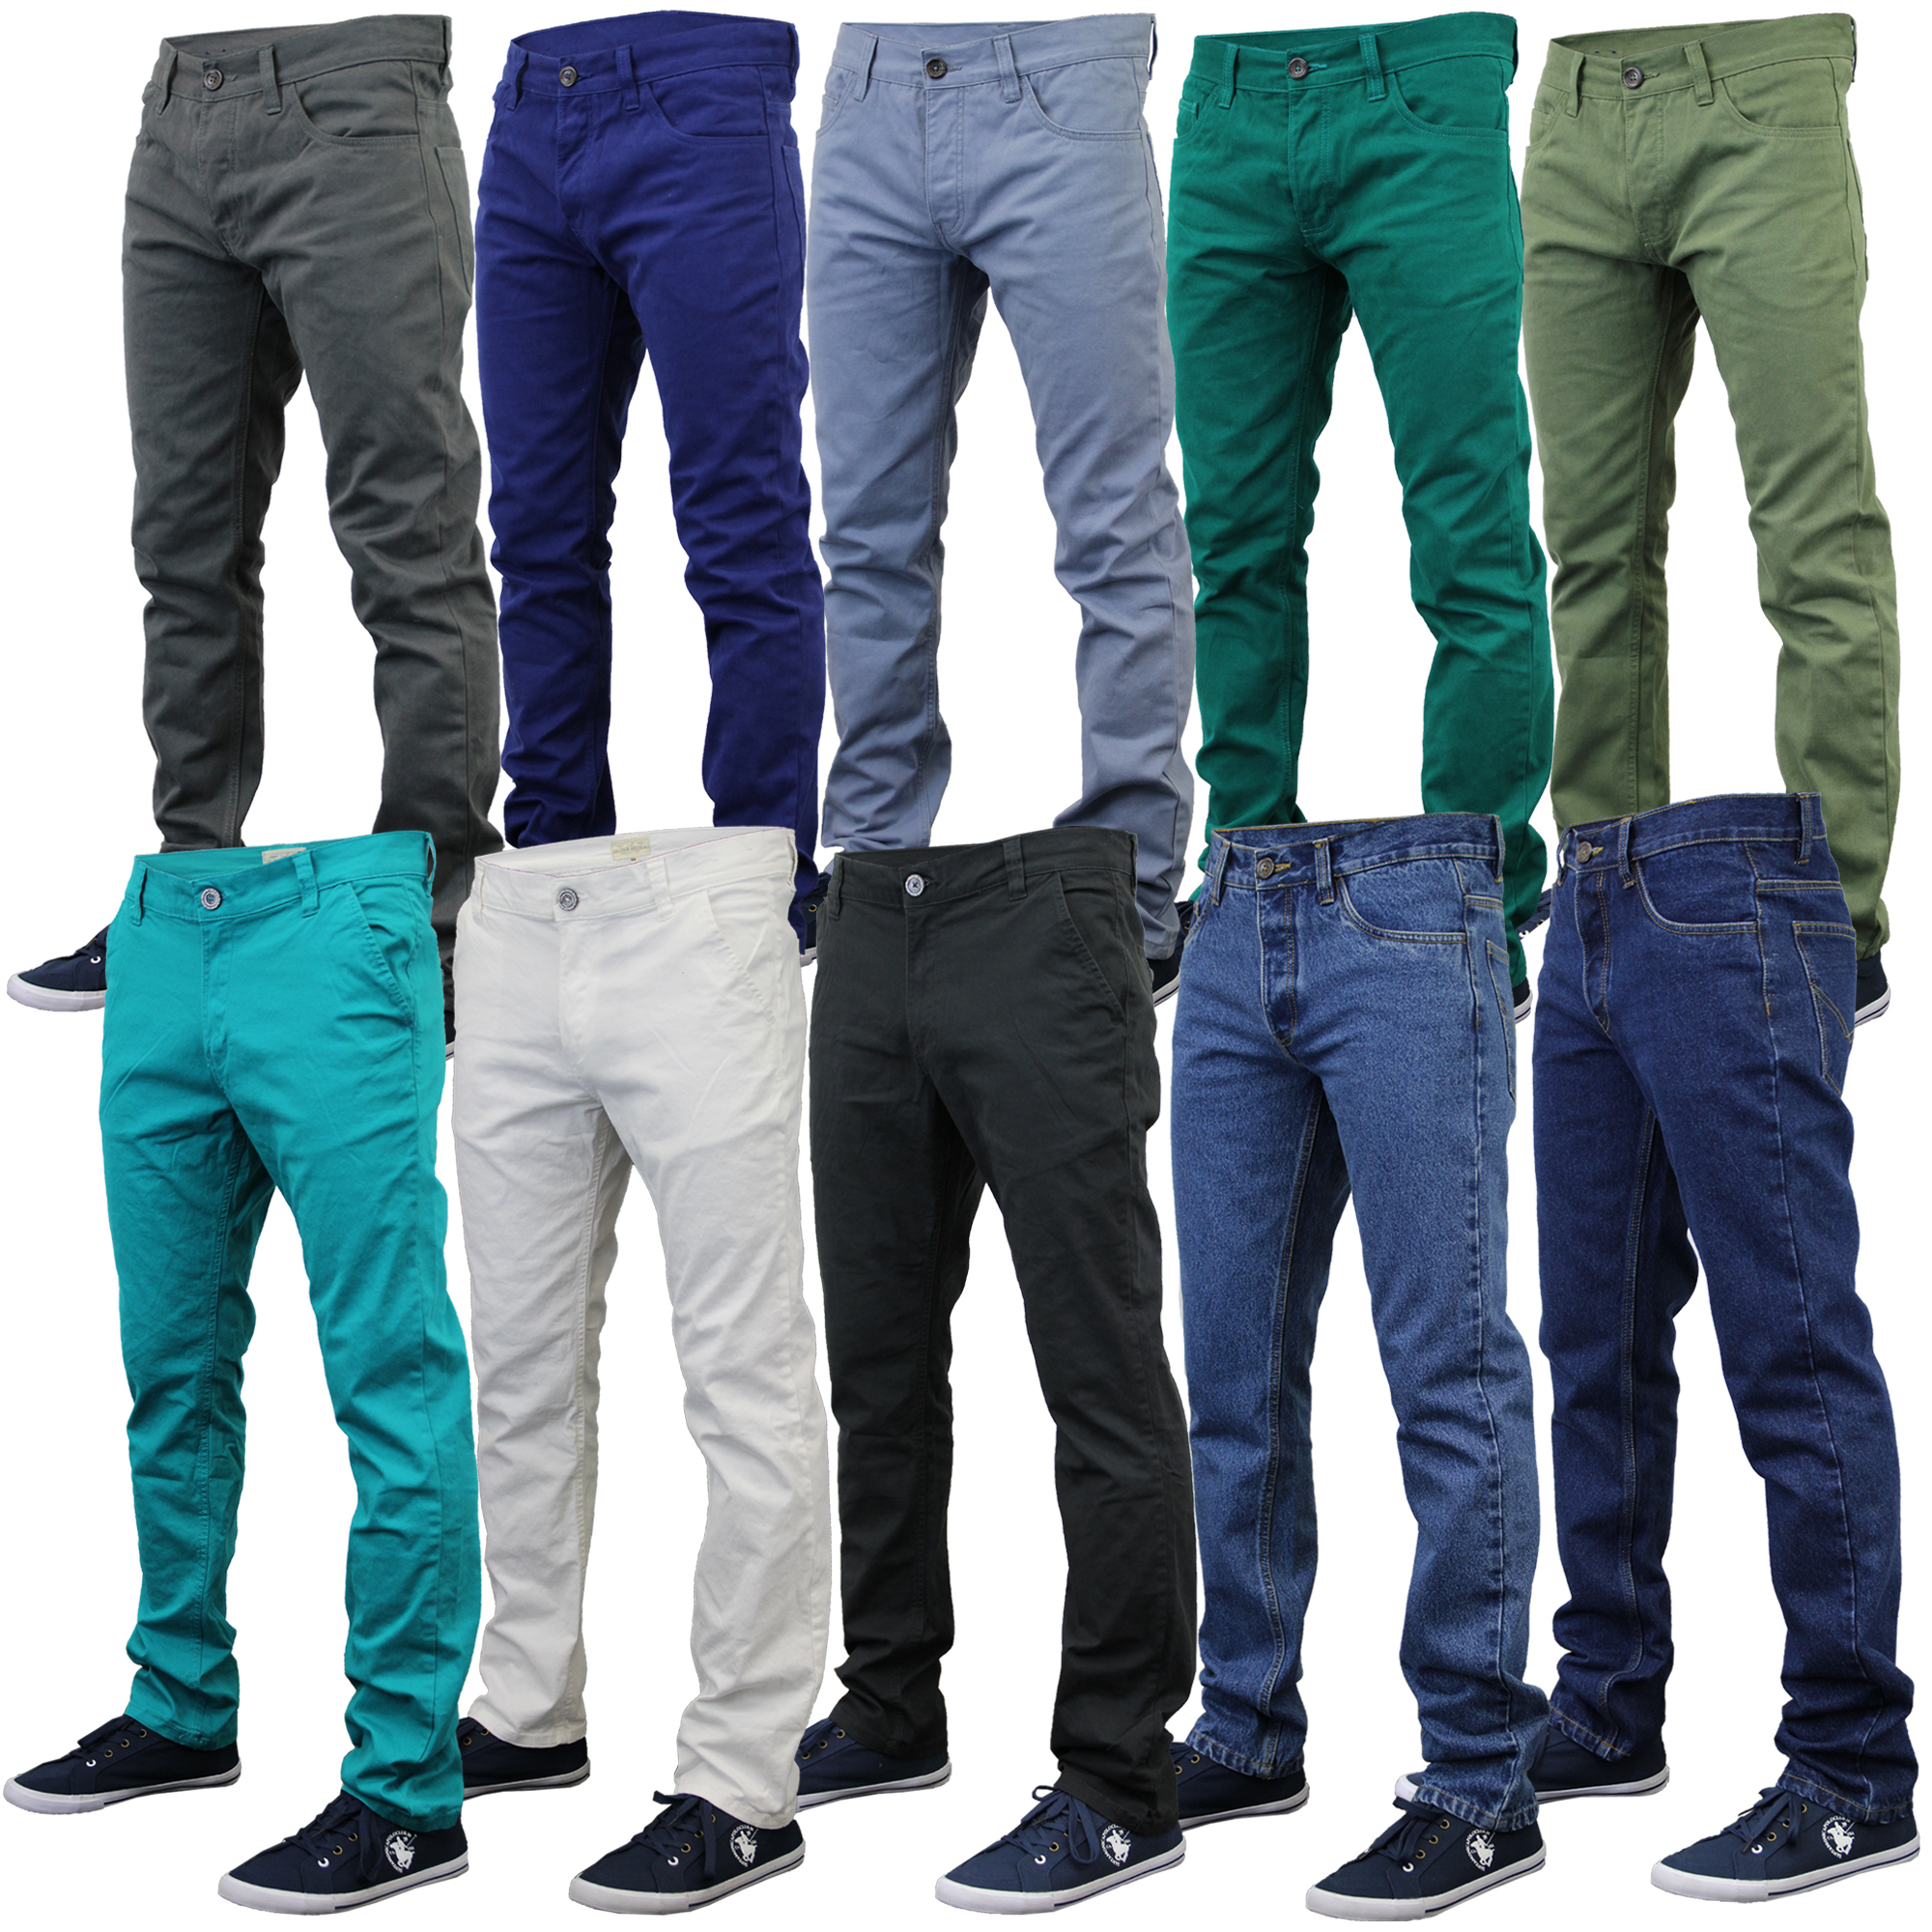 Mens Chino Jeans Jack South Kushiro City Denim Pants Slim ...